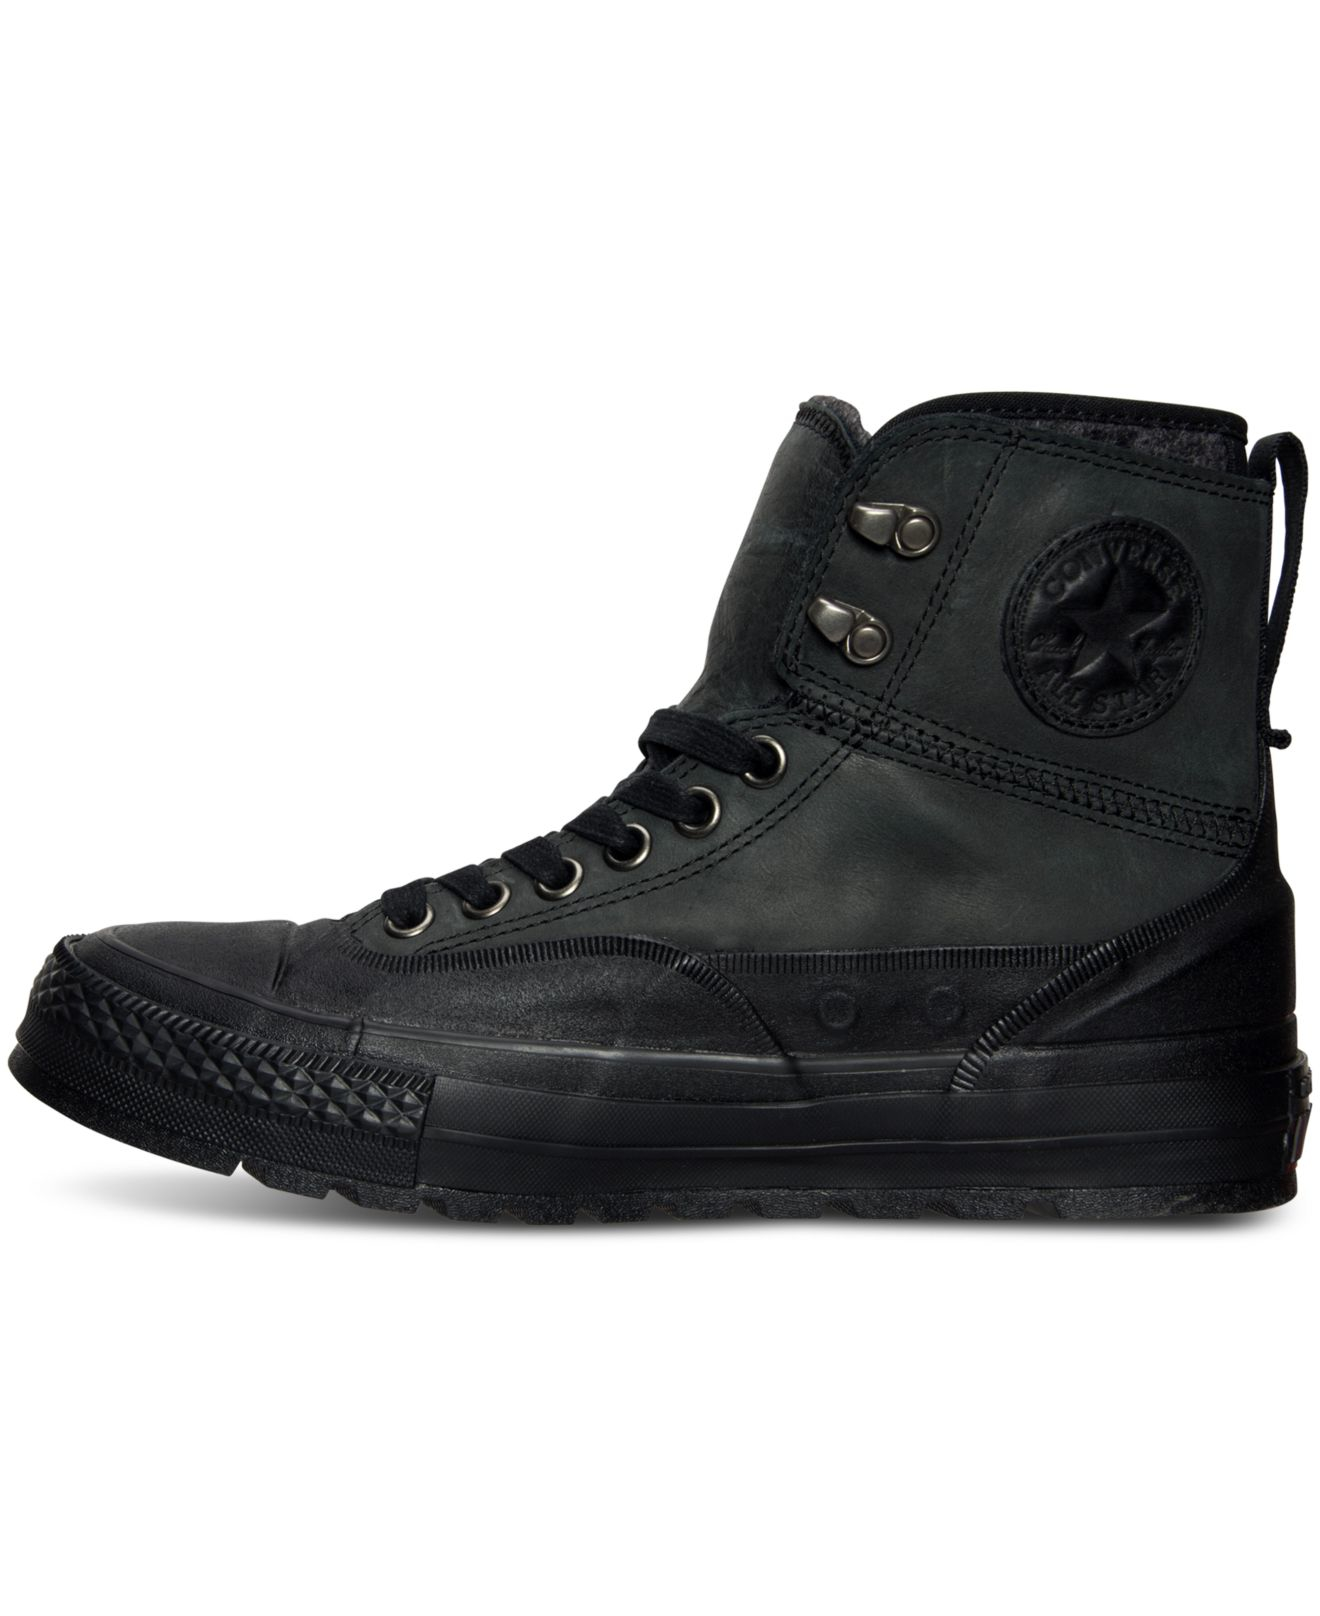 7ccf1b10e8e7ba good mens converse mid street black leather shoes 94984 6d4d9  coupon code  for lyst converse mens chuck taylor all star tekoa boots from finish 6f0e5  01010